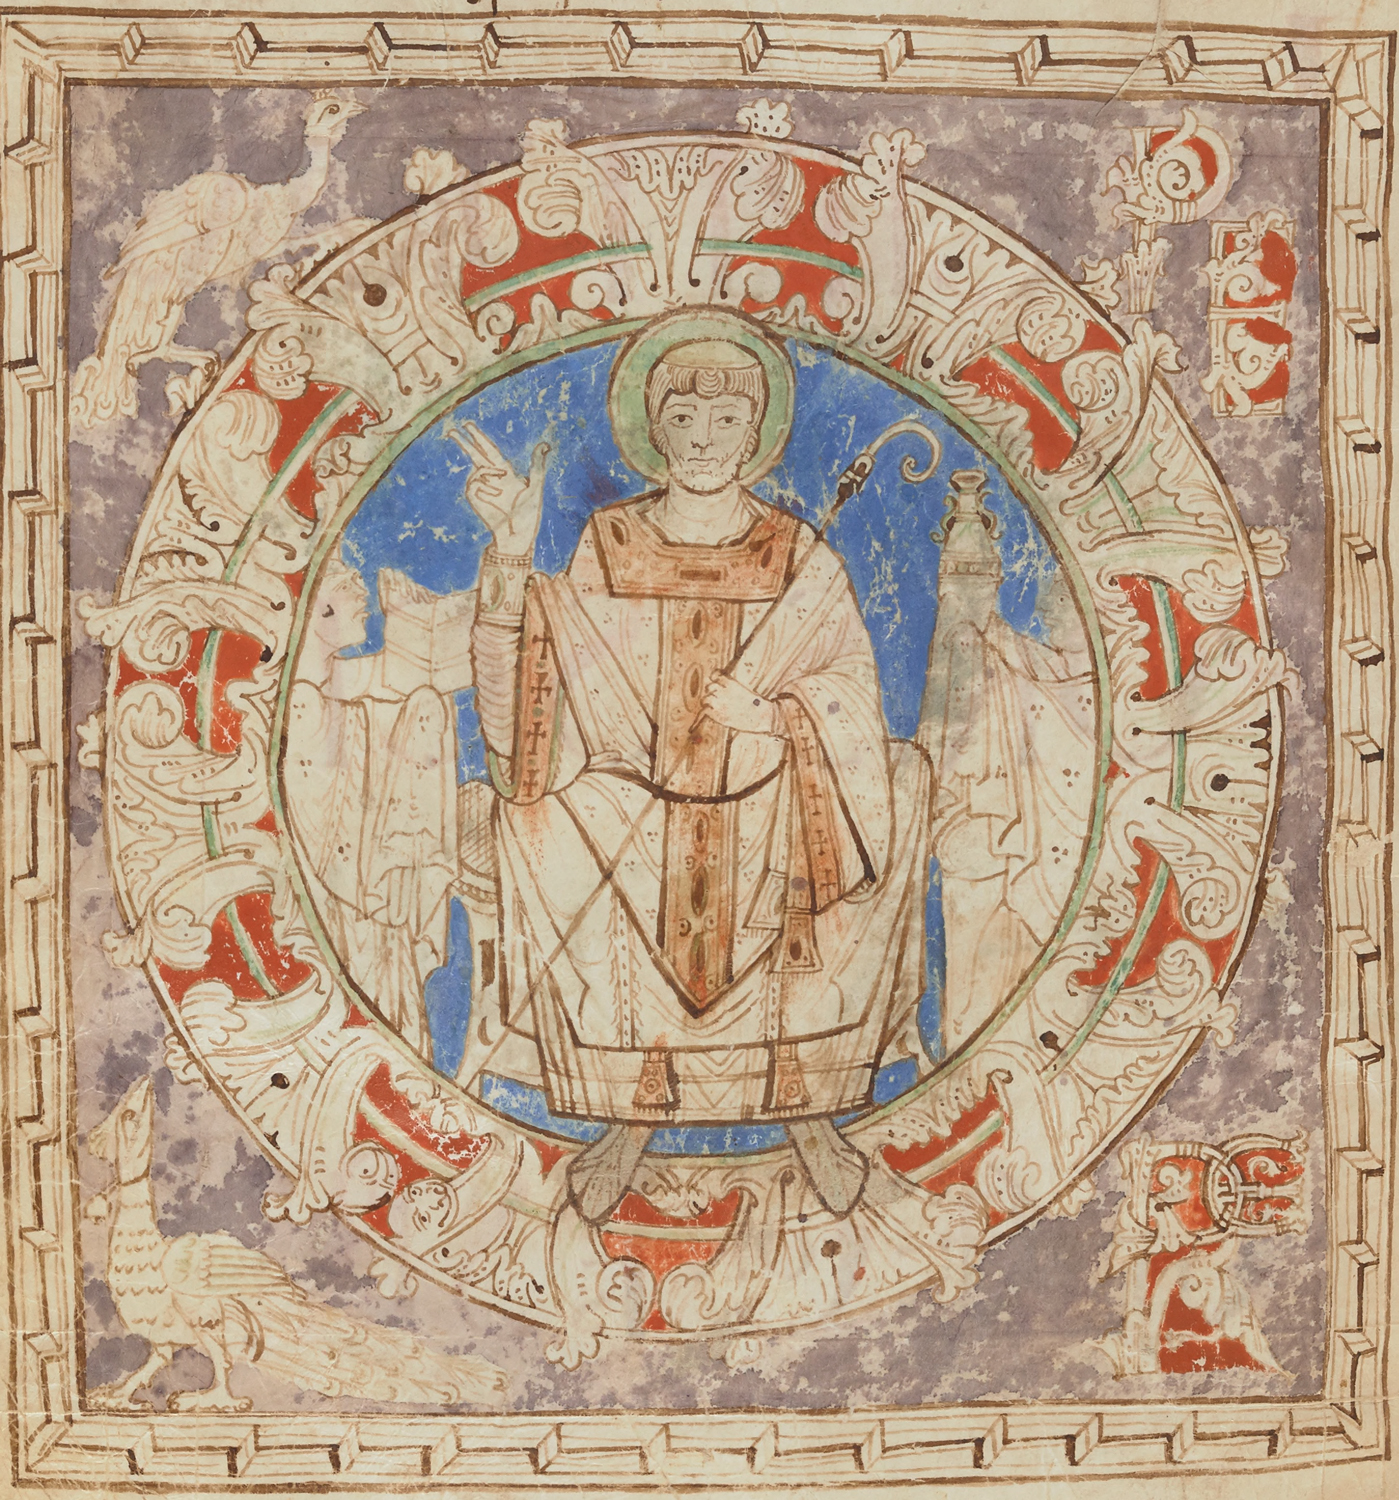 Saints in medieval manuscripts - The British Library